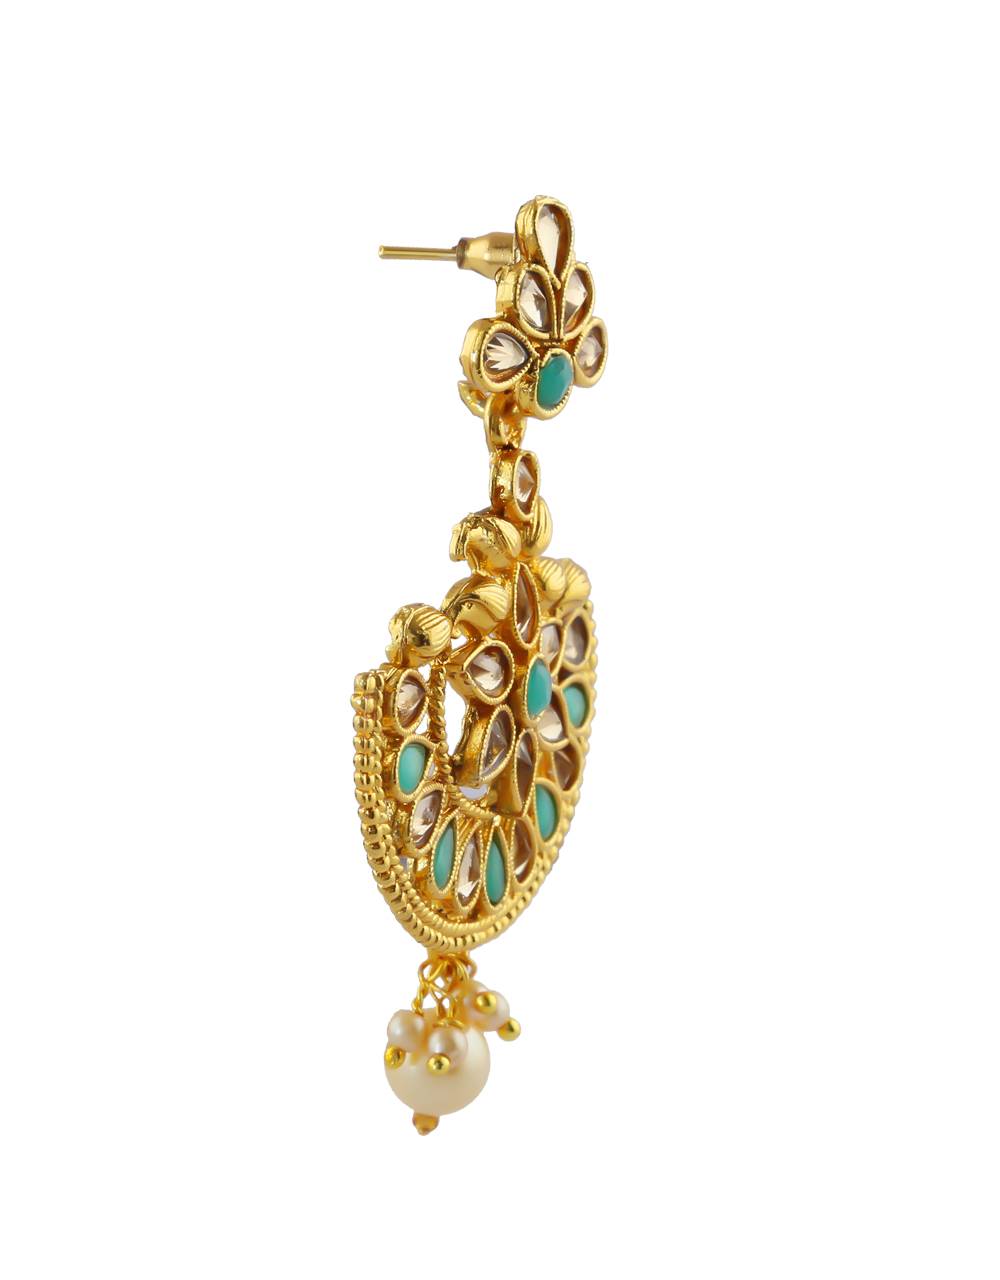 Green Colour Gold Finish Floral Design Stylish Earrings